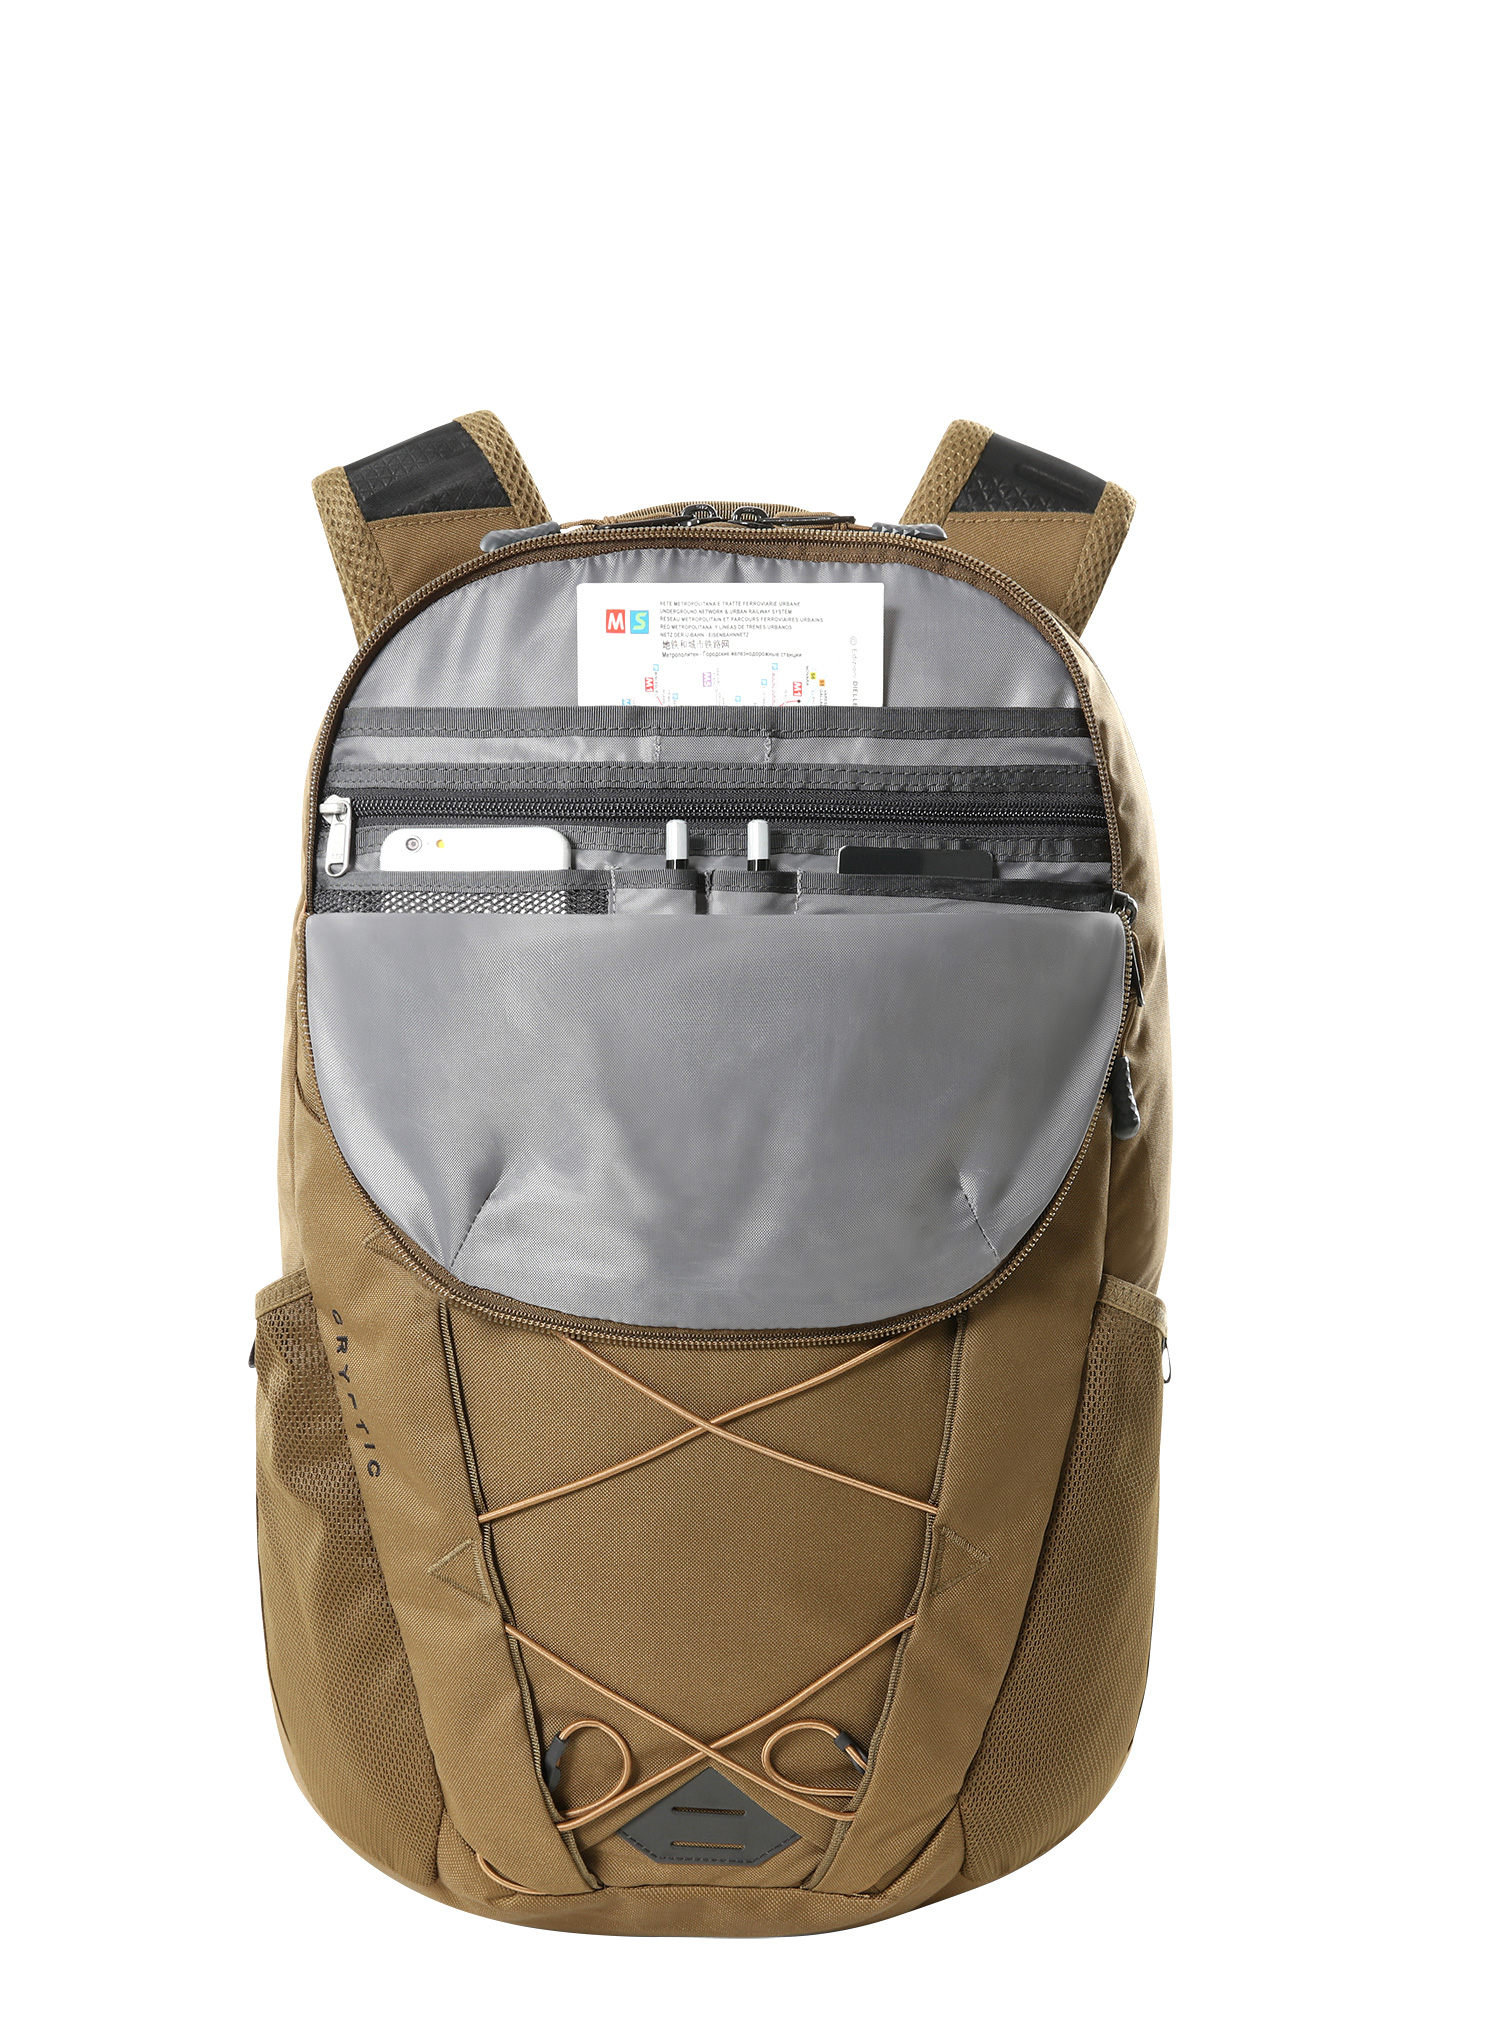 Plecak The North Face Cryptic - military olive/brown - zdjęcie nr. 4